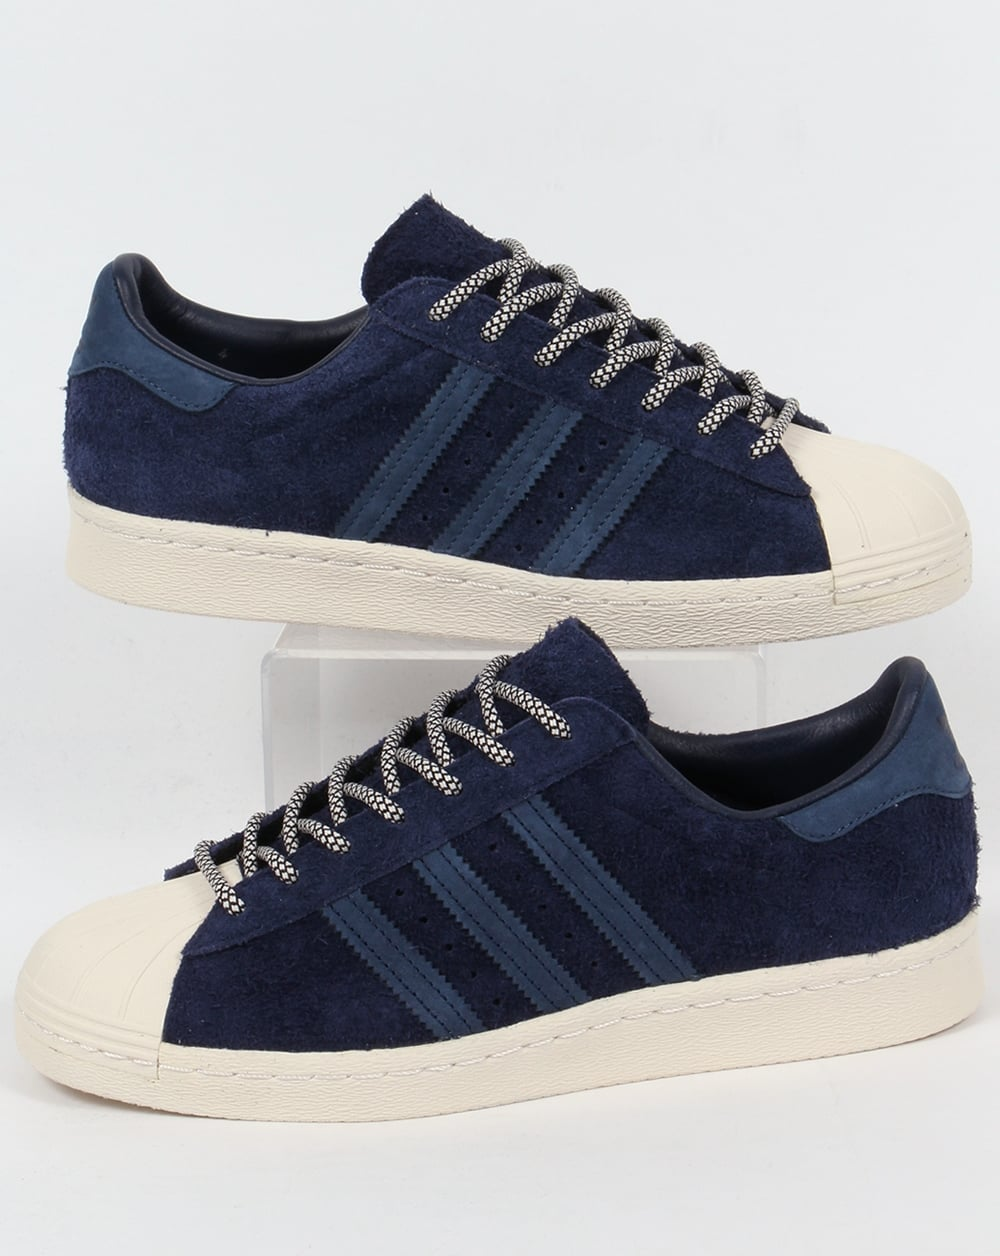 adidas superstar 80s trainers navy mineral blue white. Black Bedroom Furniture Sets. Home Design Ideas